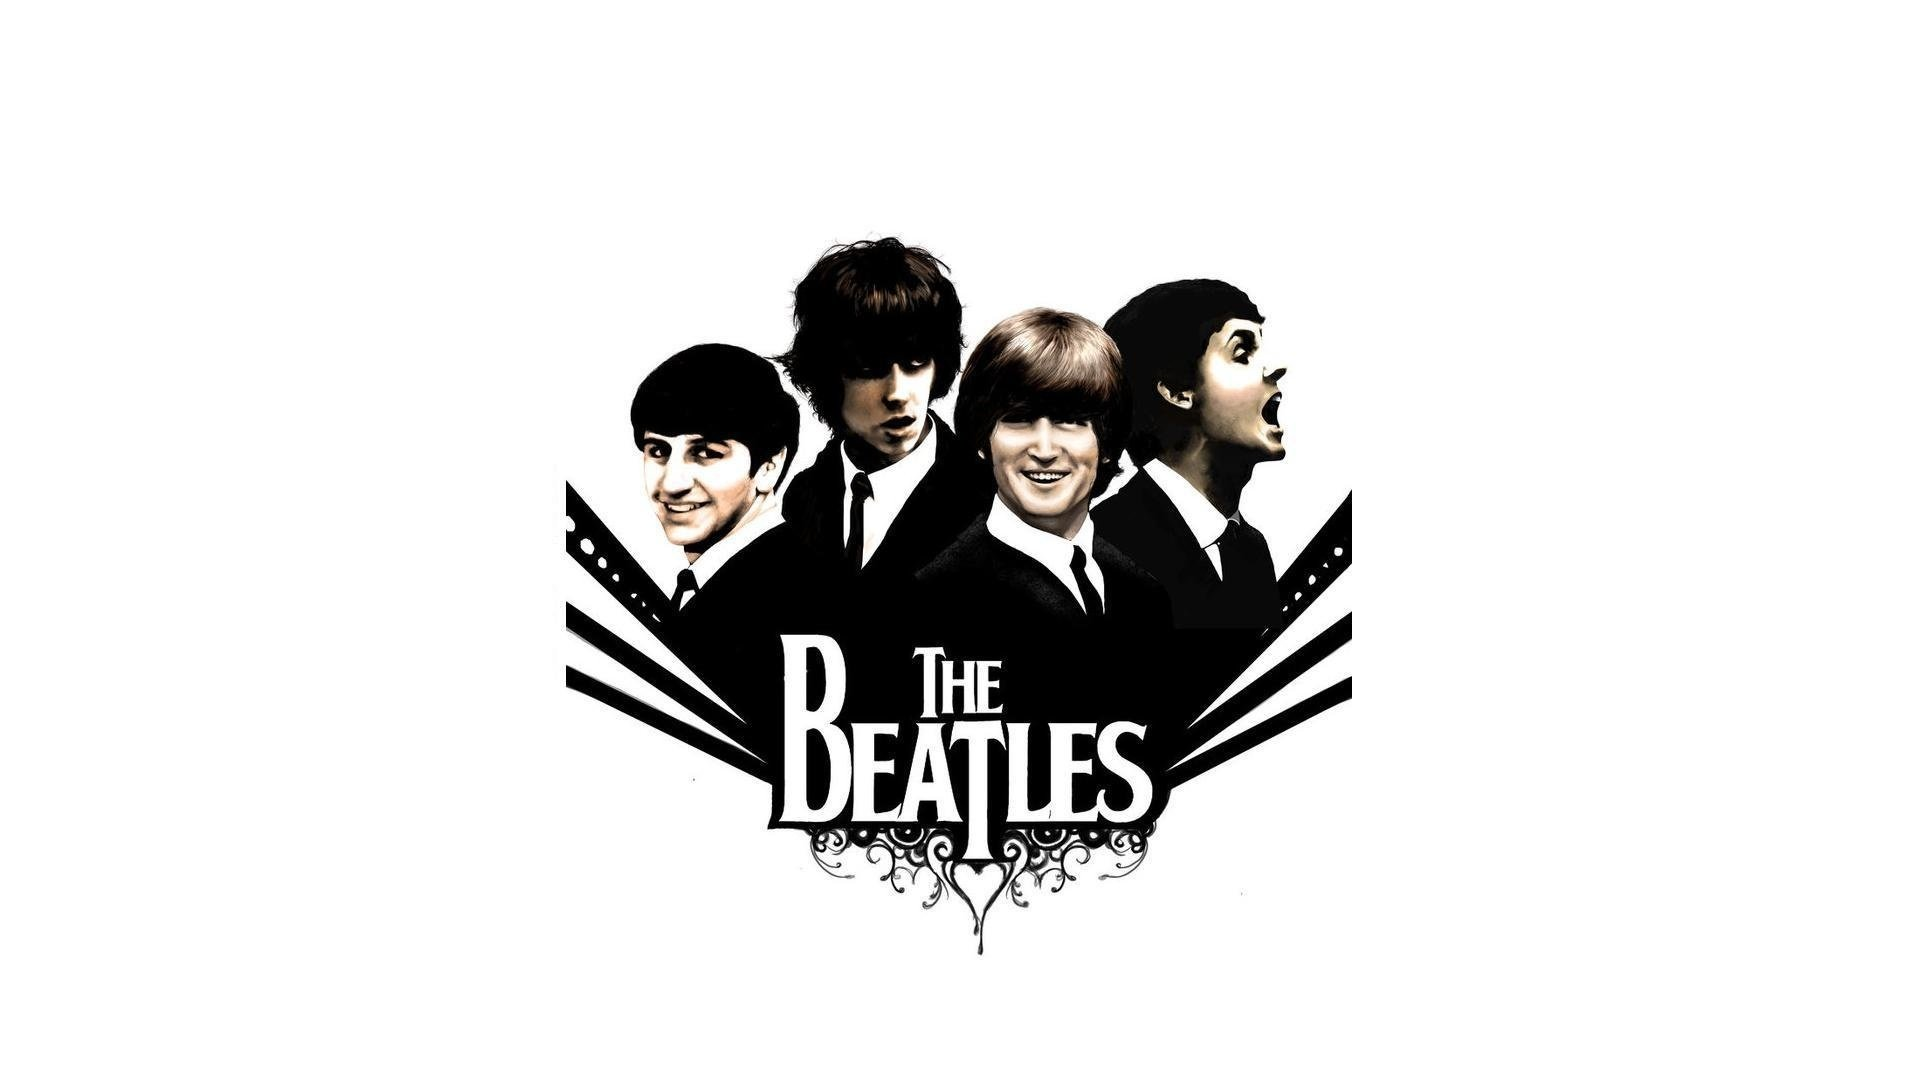 Best The Beatles Wallpaper ID271371 For High Resolution Hd 1920x1080 Desktop